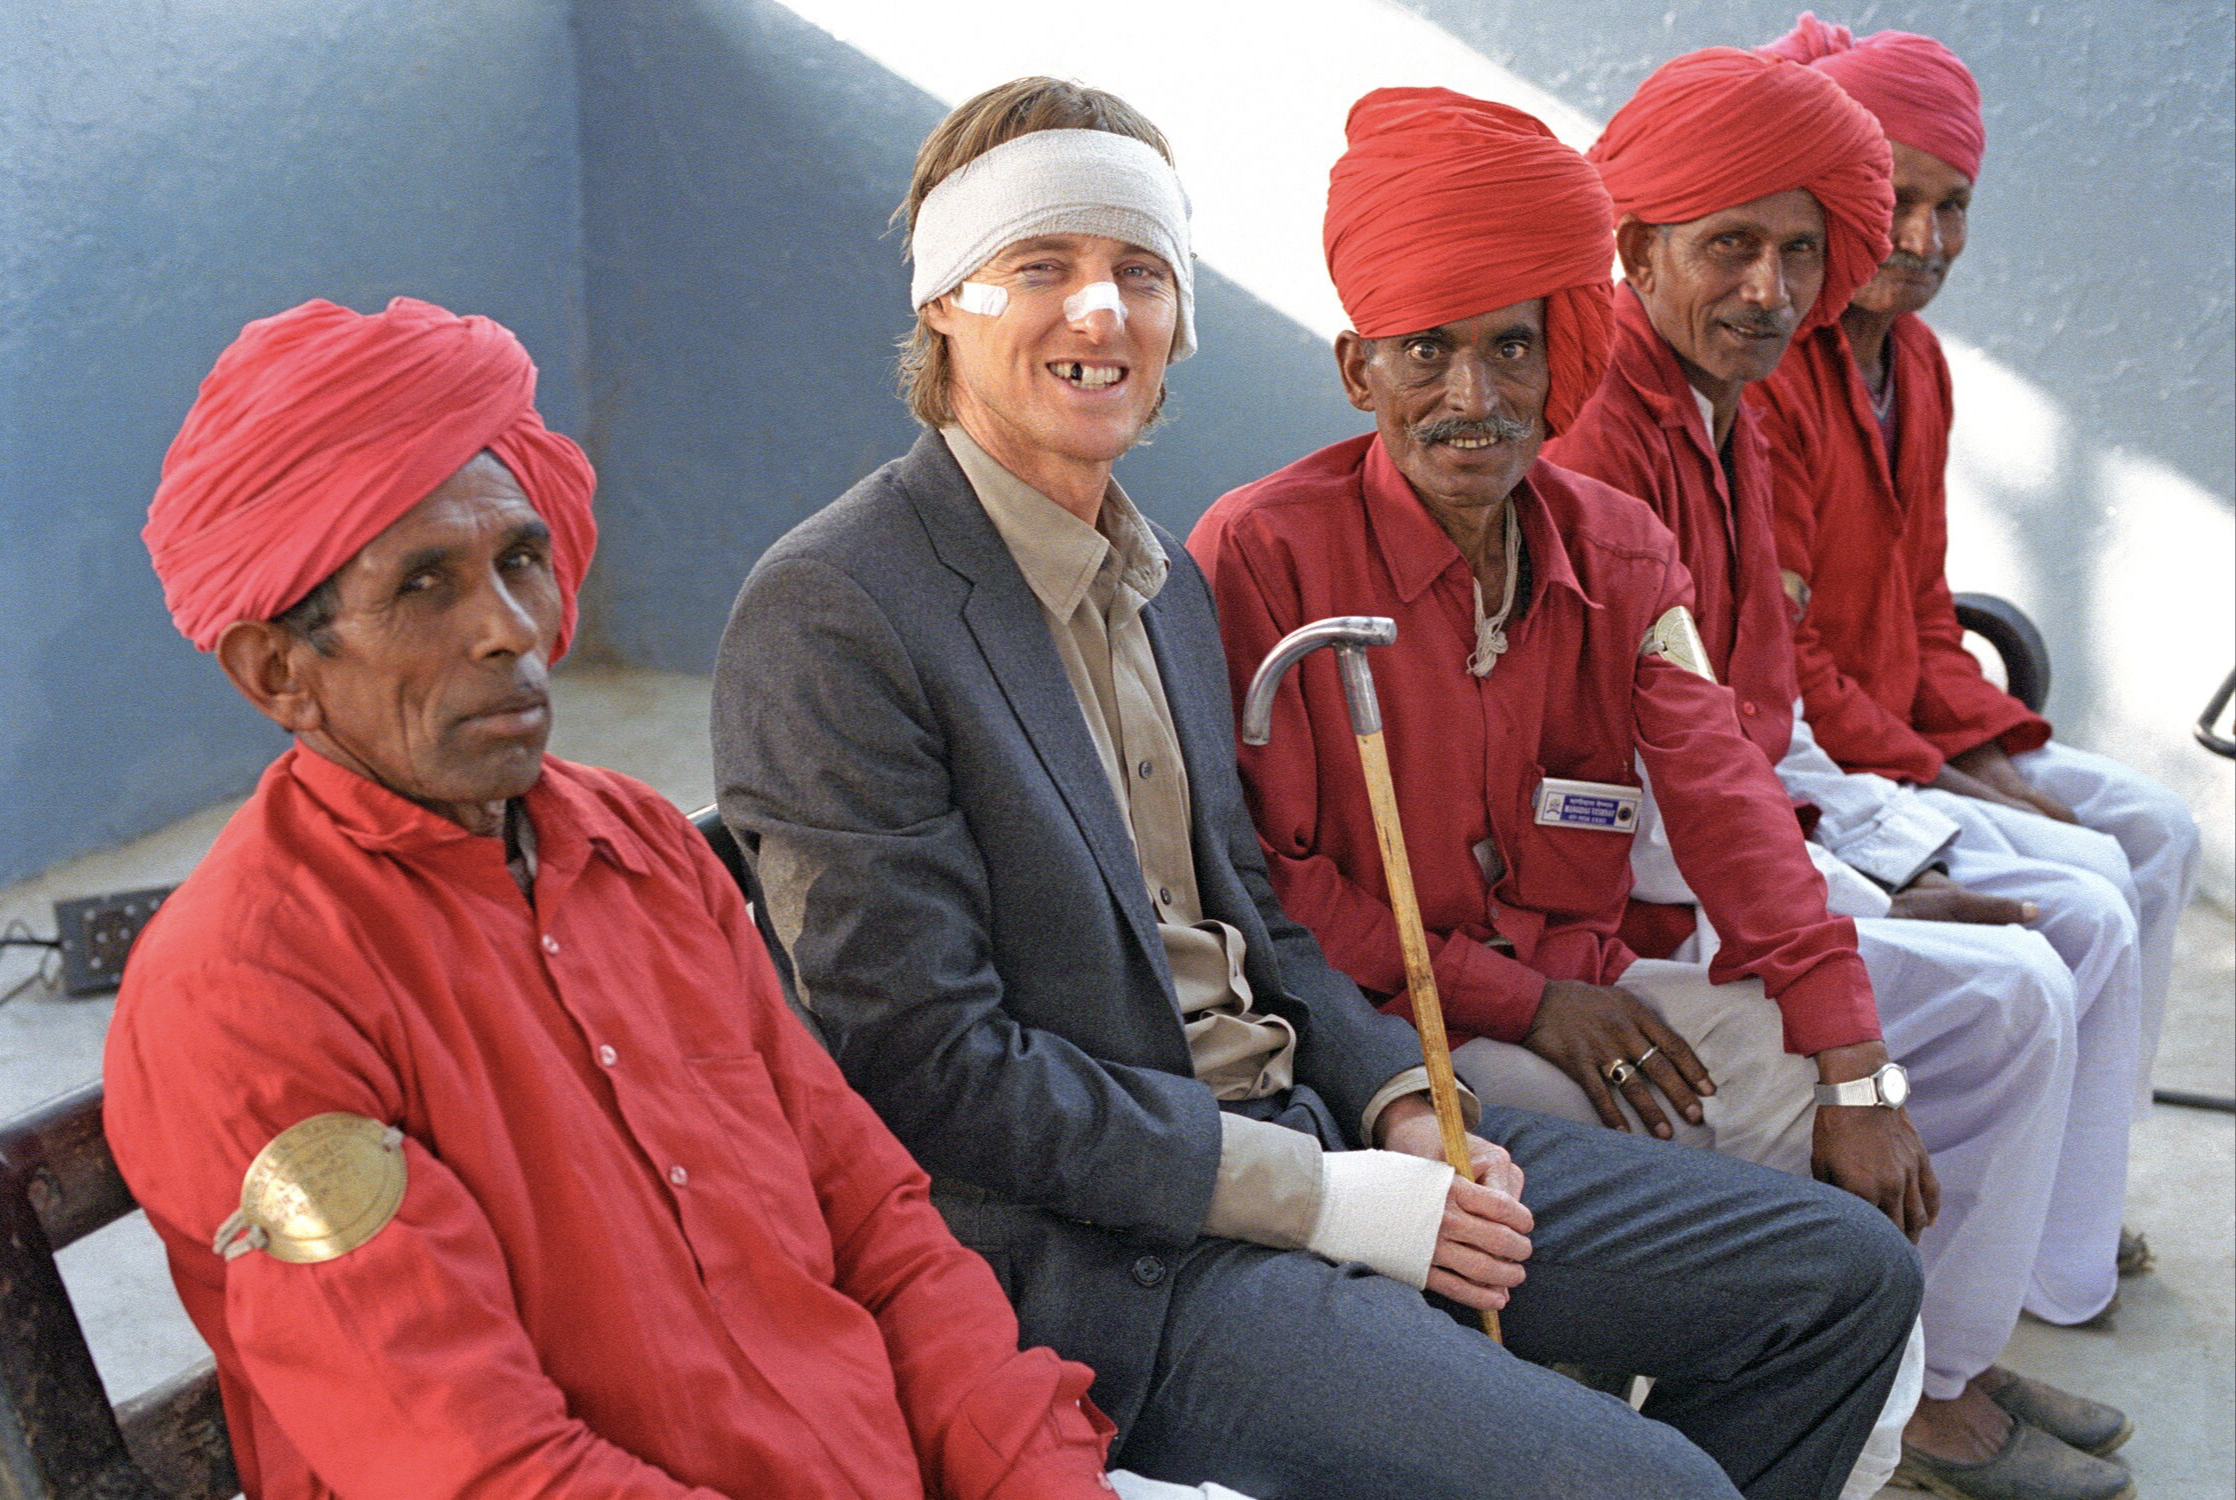 Owen Wilson and extras waiting for a train Rajasthan, India, 2007